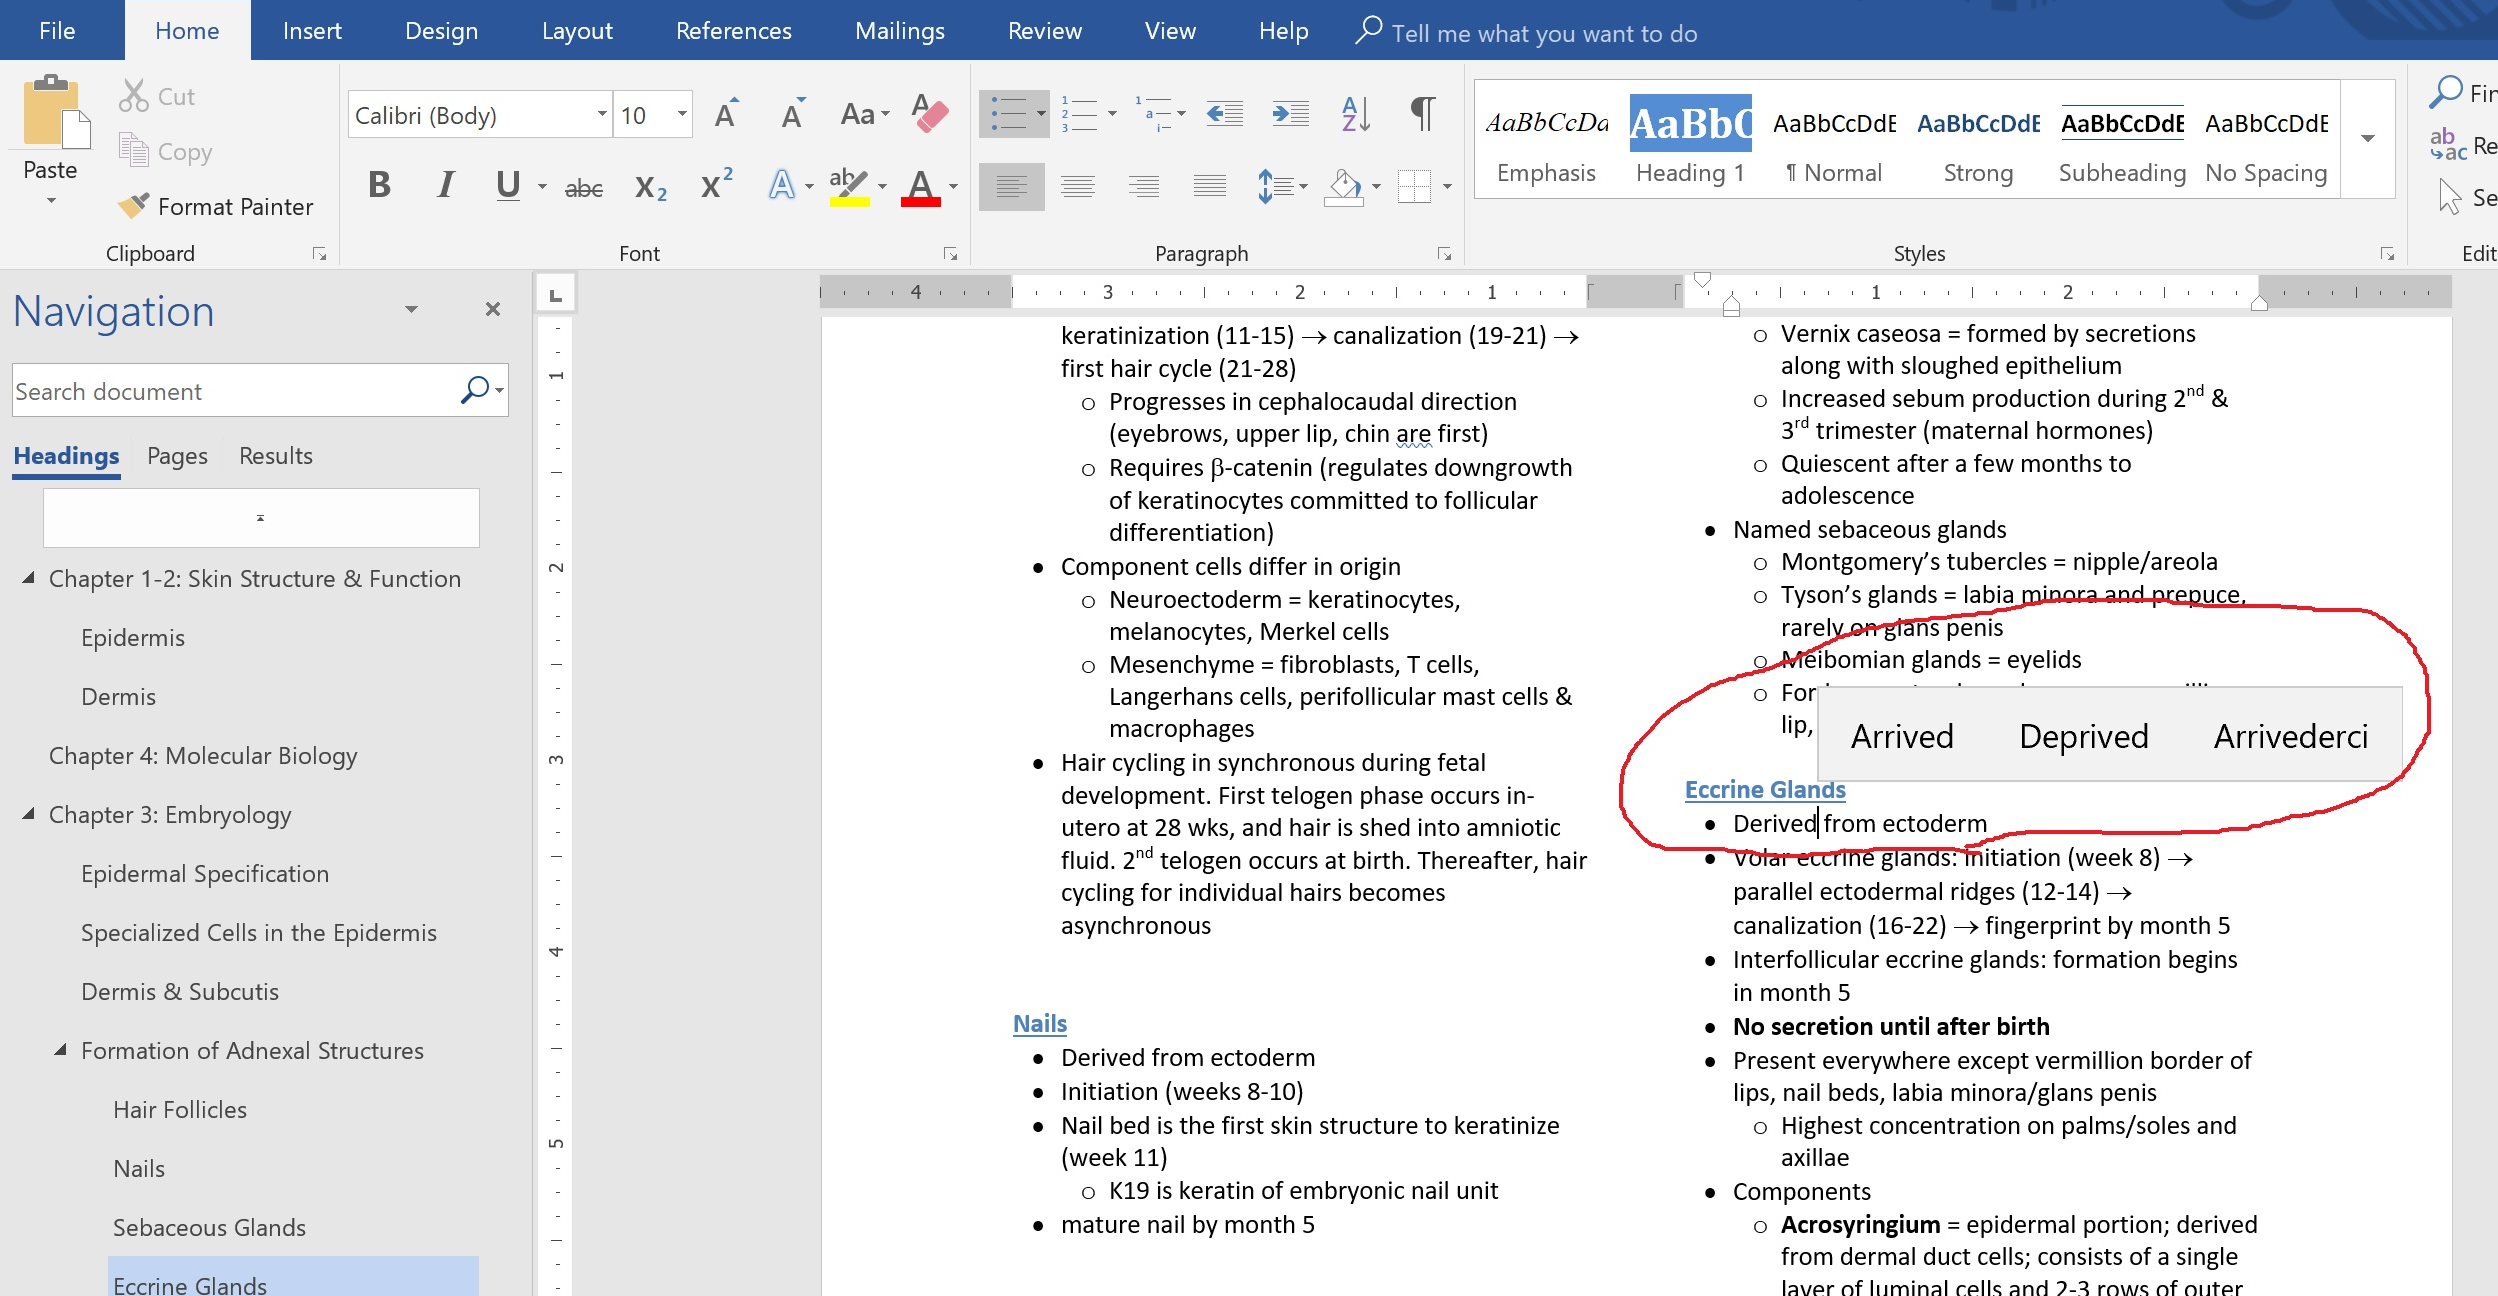 disable predictive text in Word? - Microsoft Community